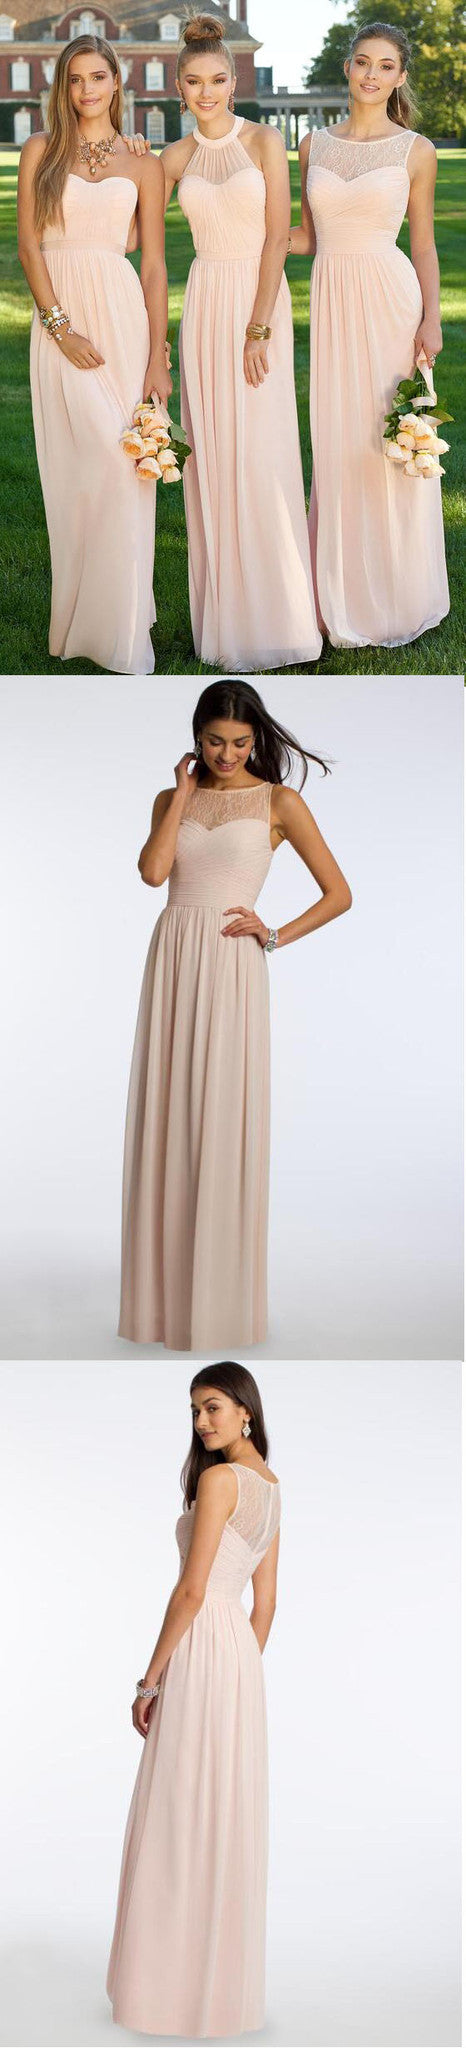 Blush Pink Mismatched Styles Modern Long Cheap Bridesmaid Dresses, BG51310